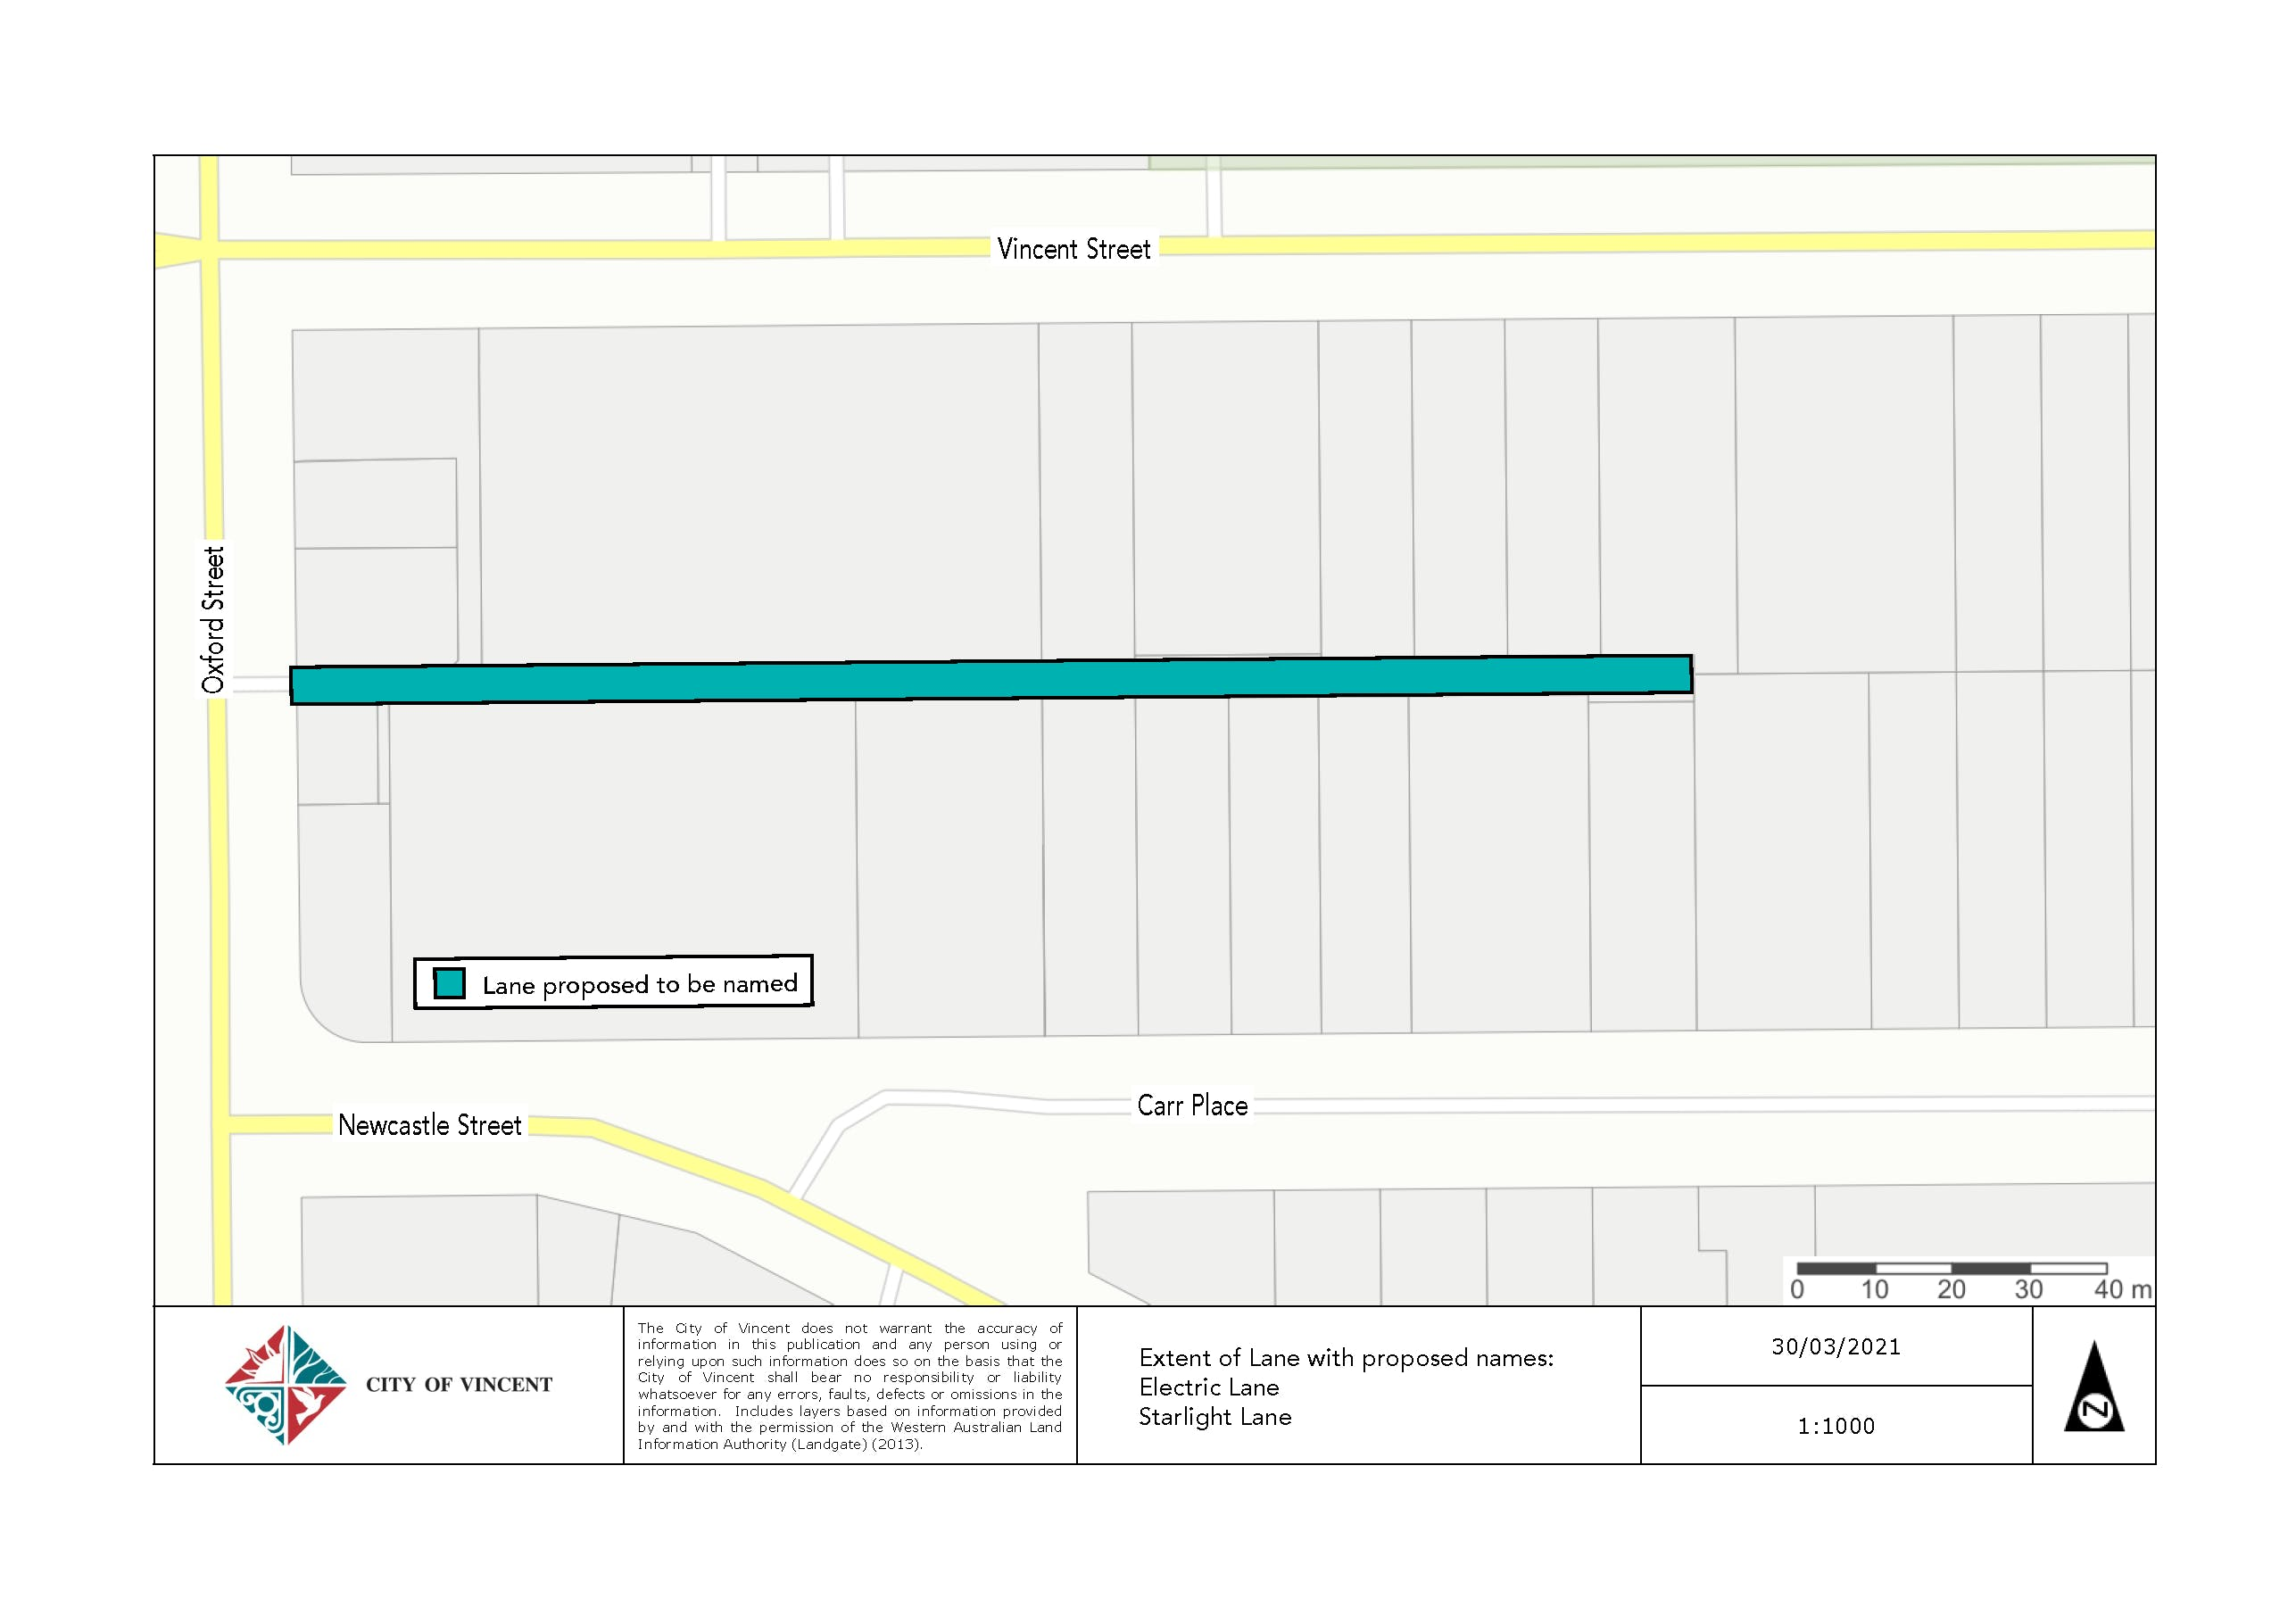 Plan showing location and extent of laneway